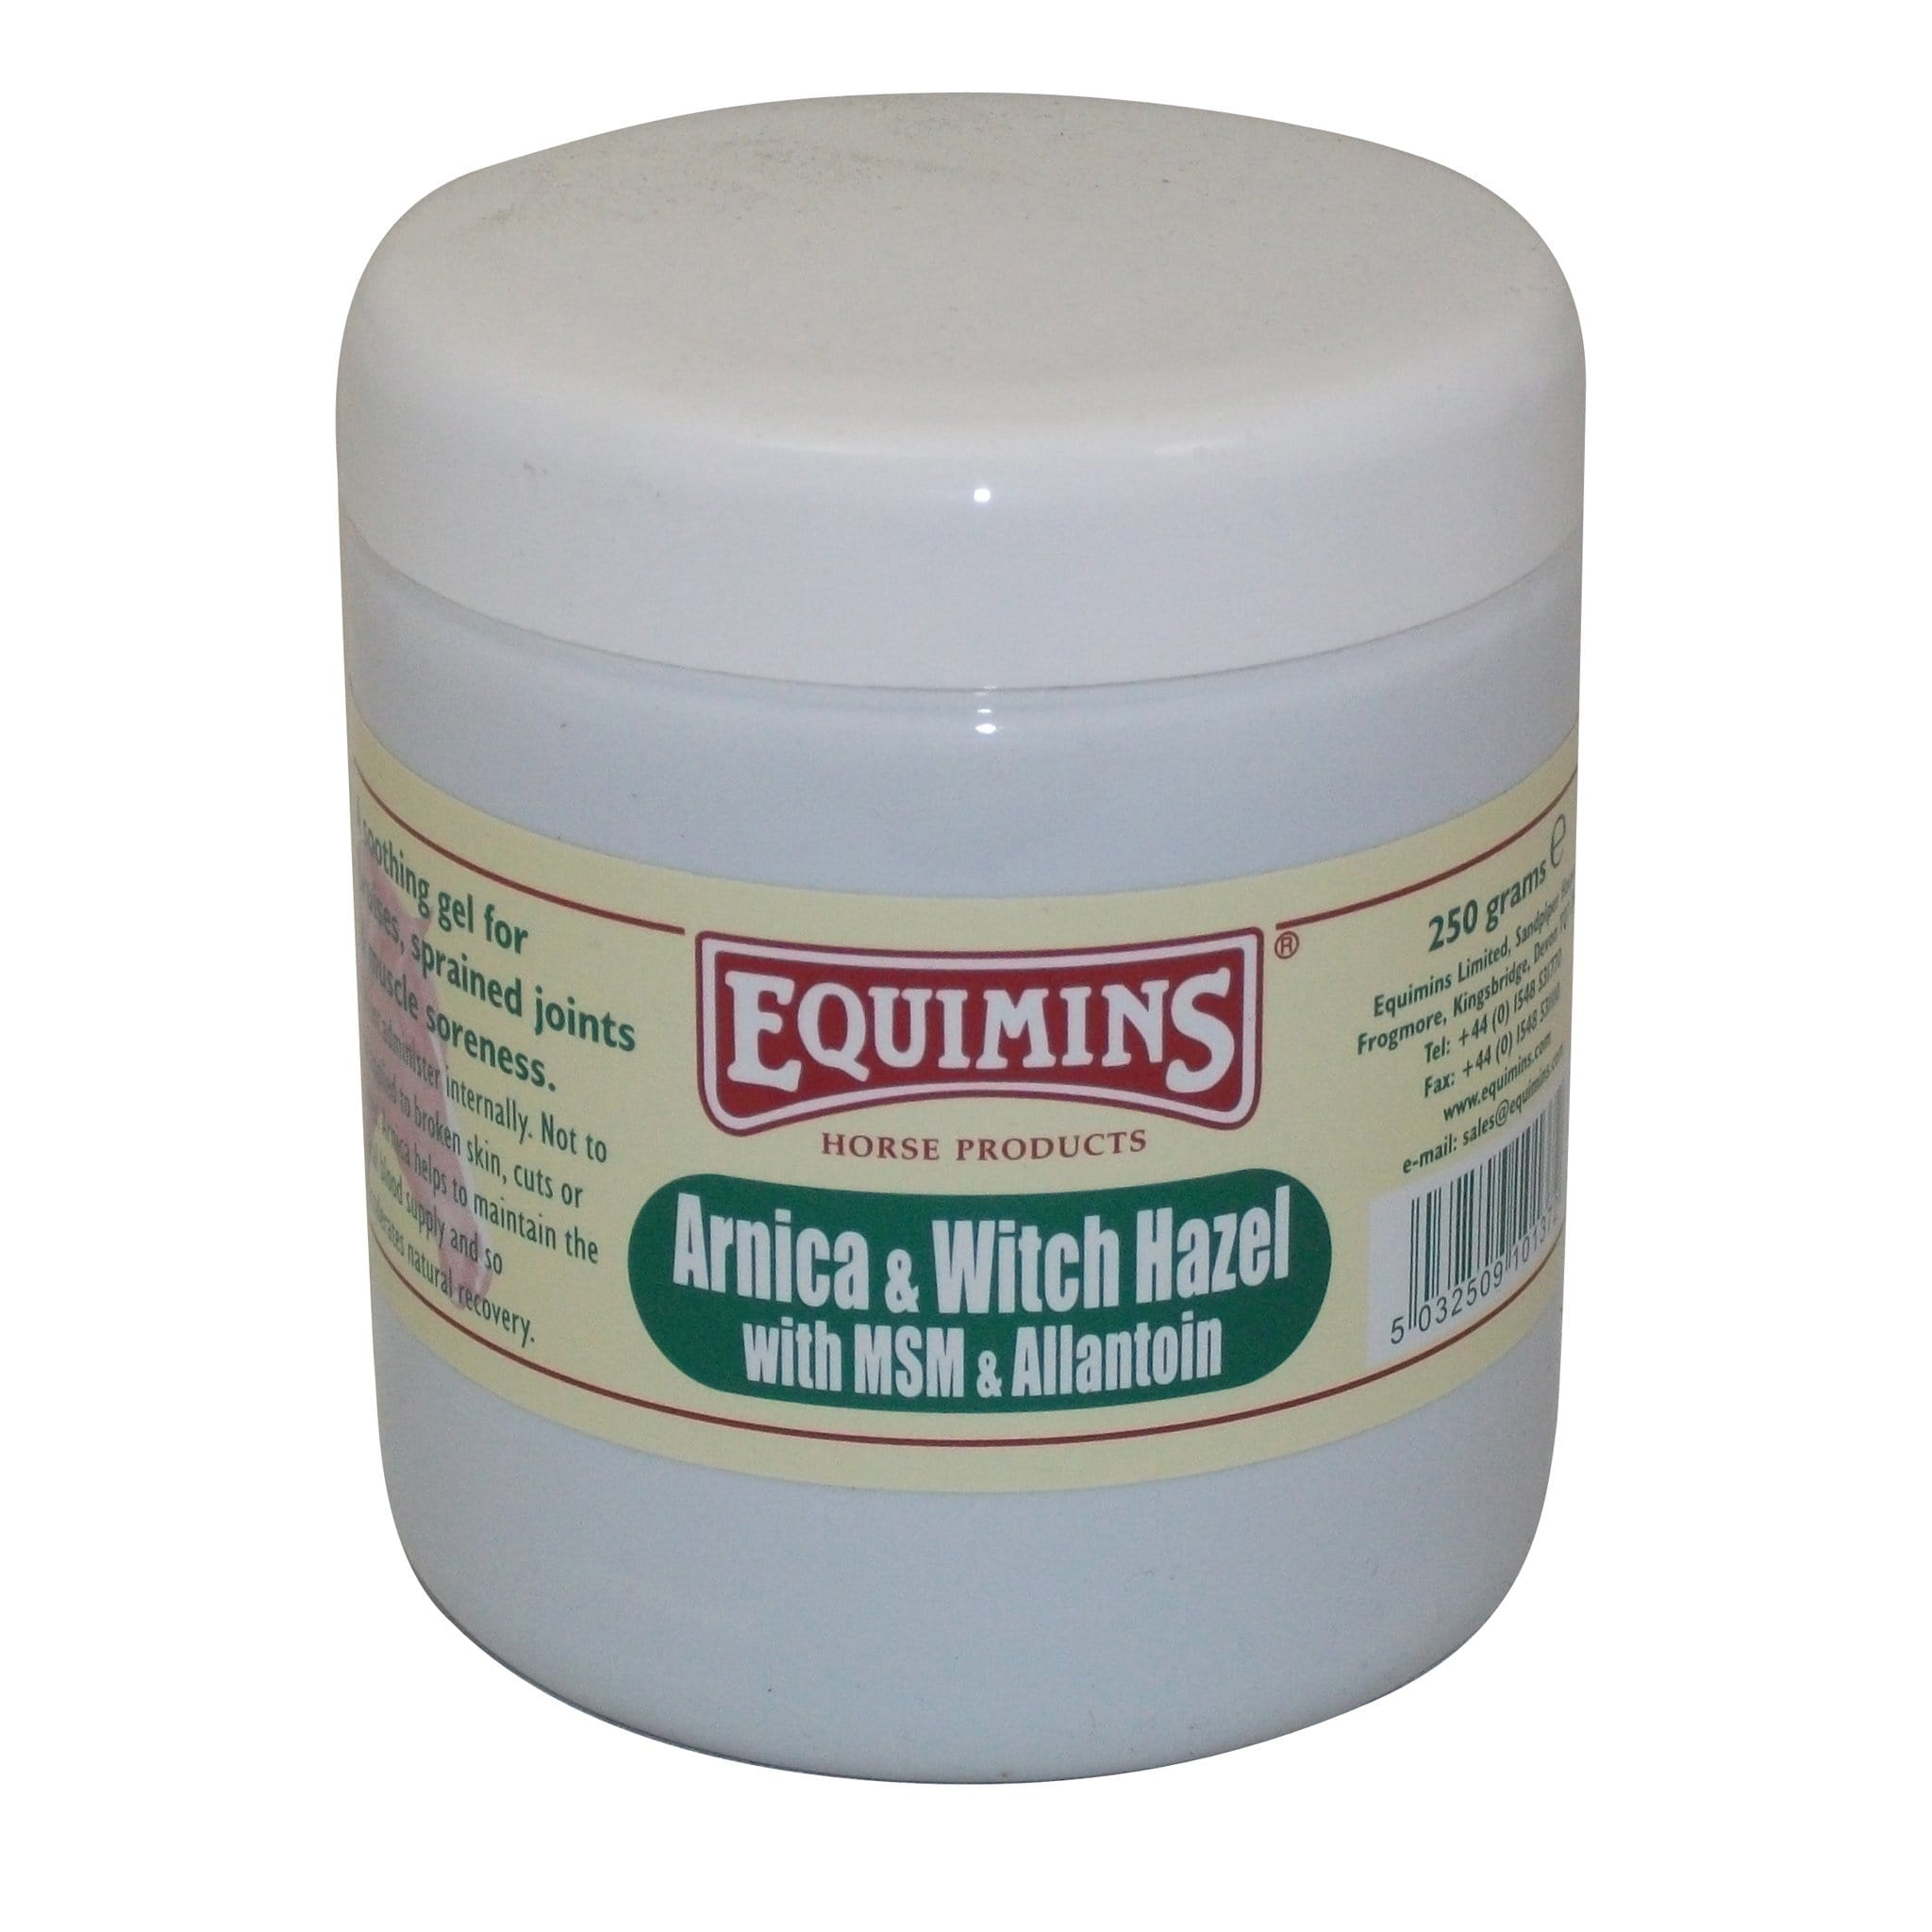 Equimins Arnica and Witch Hazel Gel 250g EQS0012